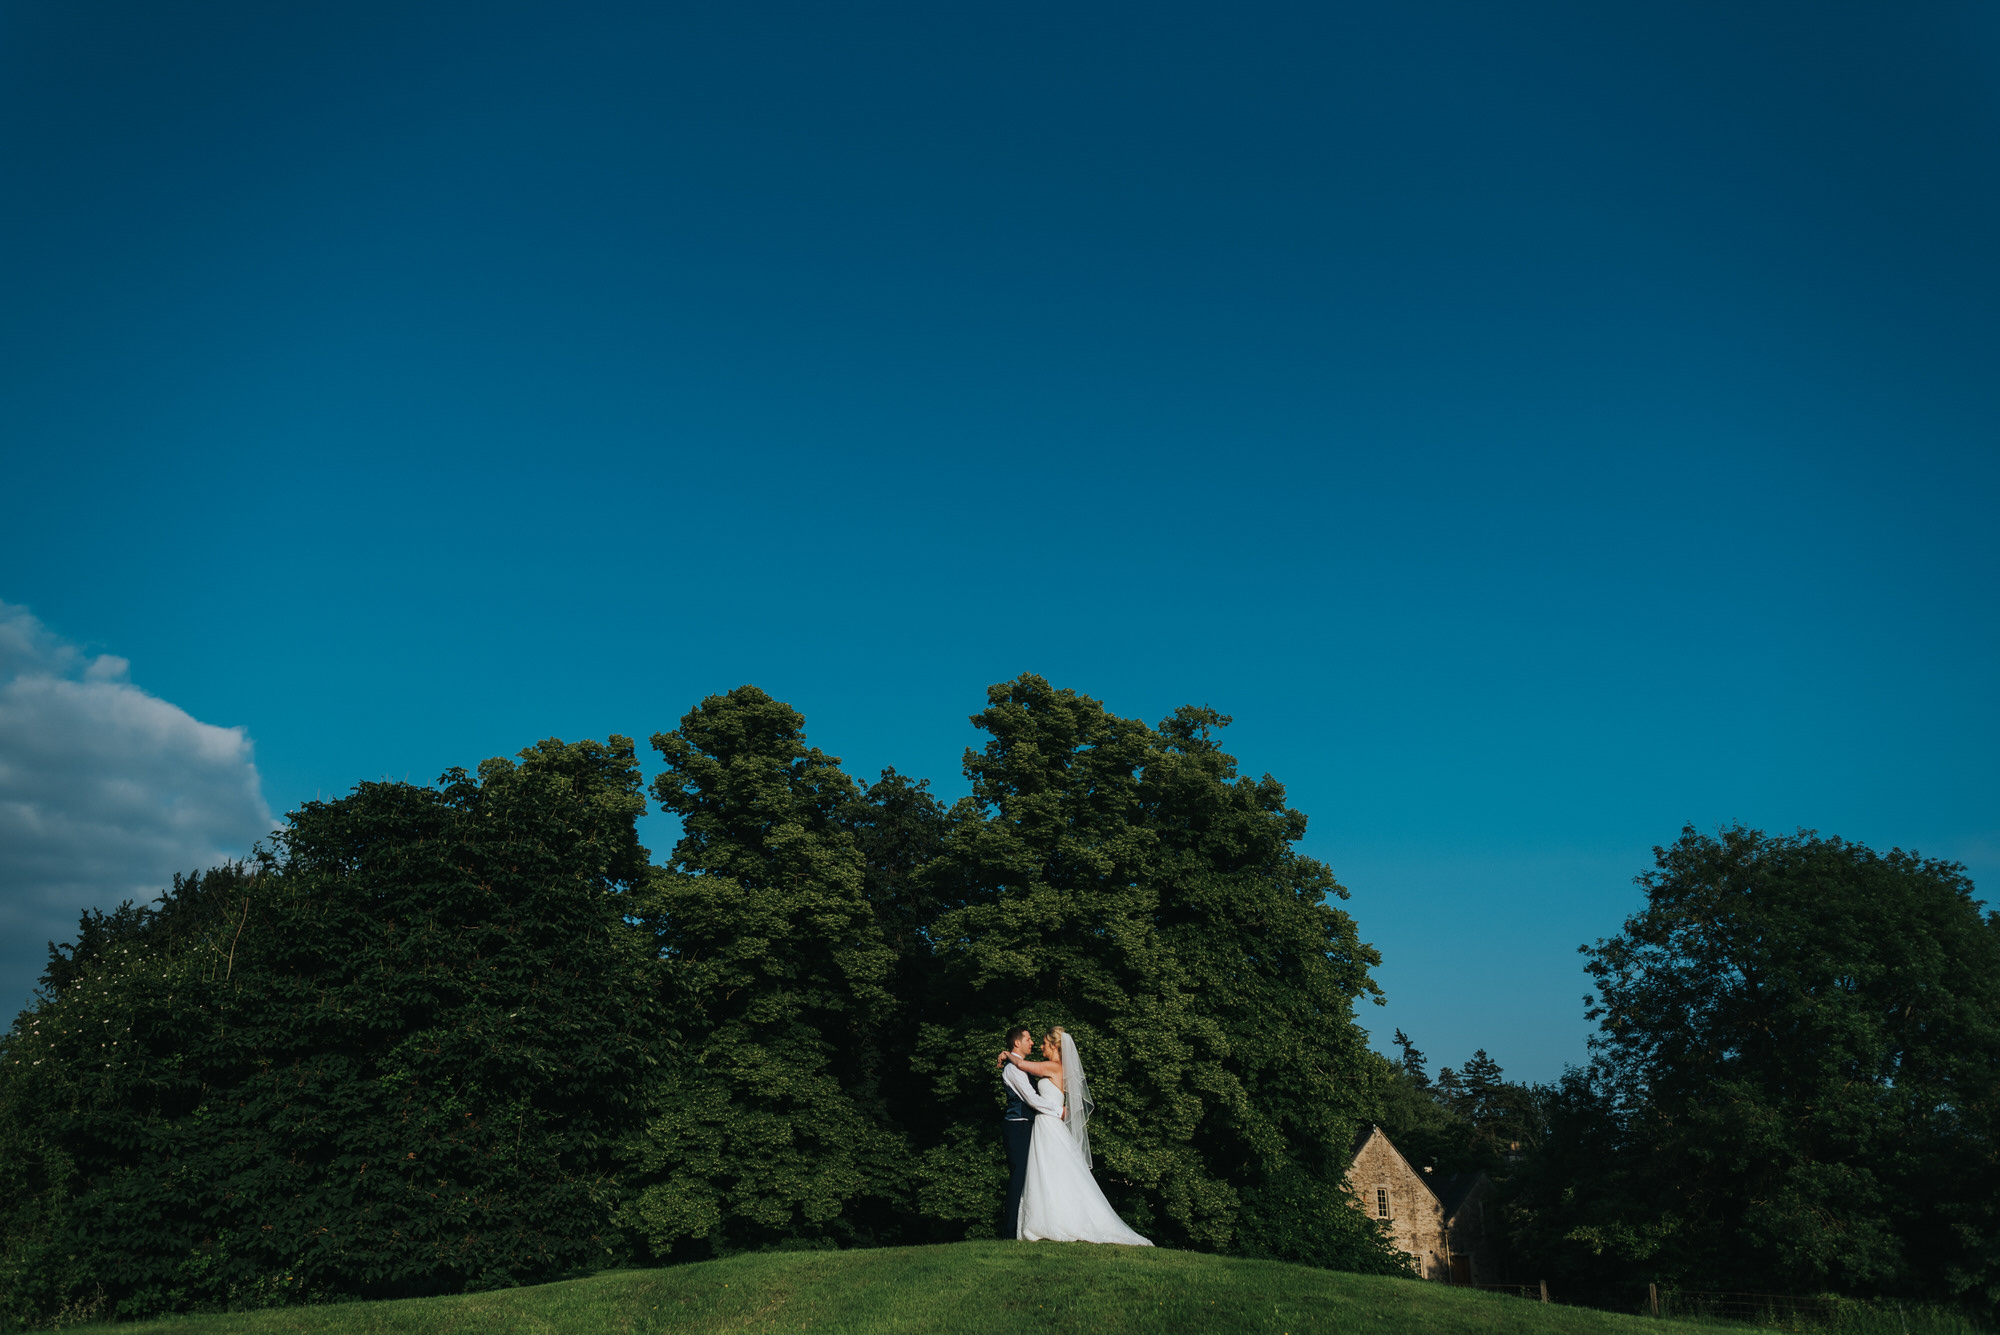 Elmhay Park wedding photographer